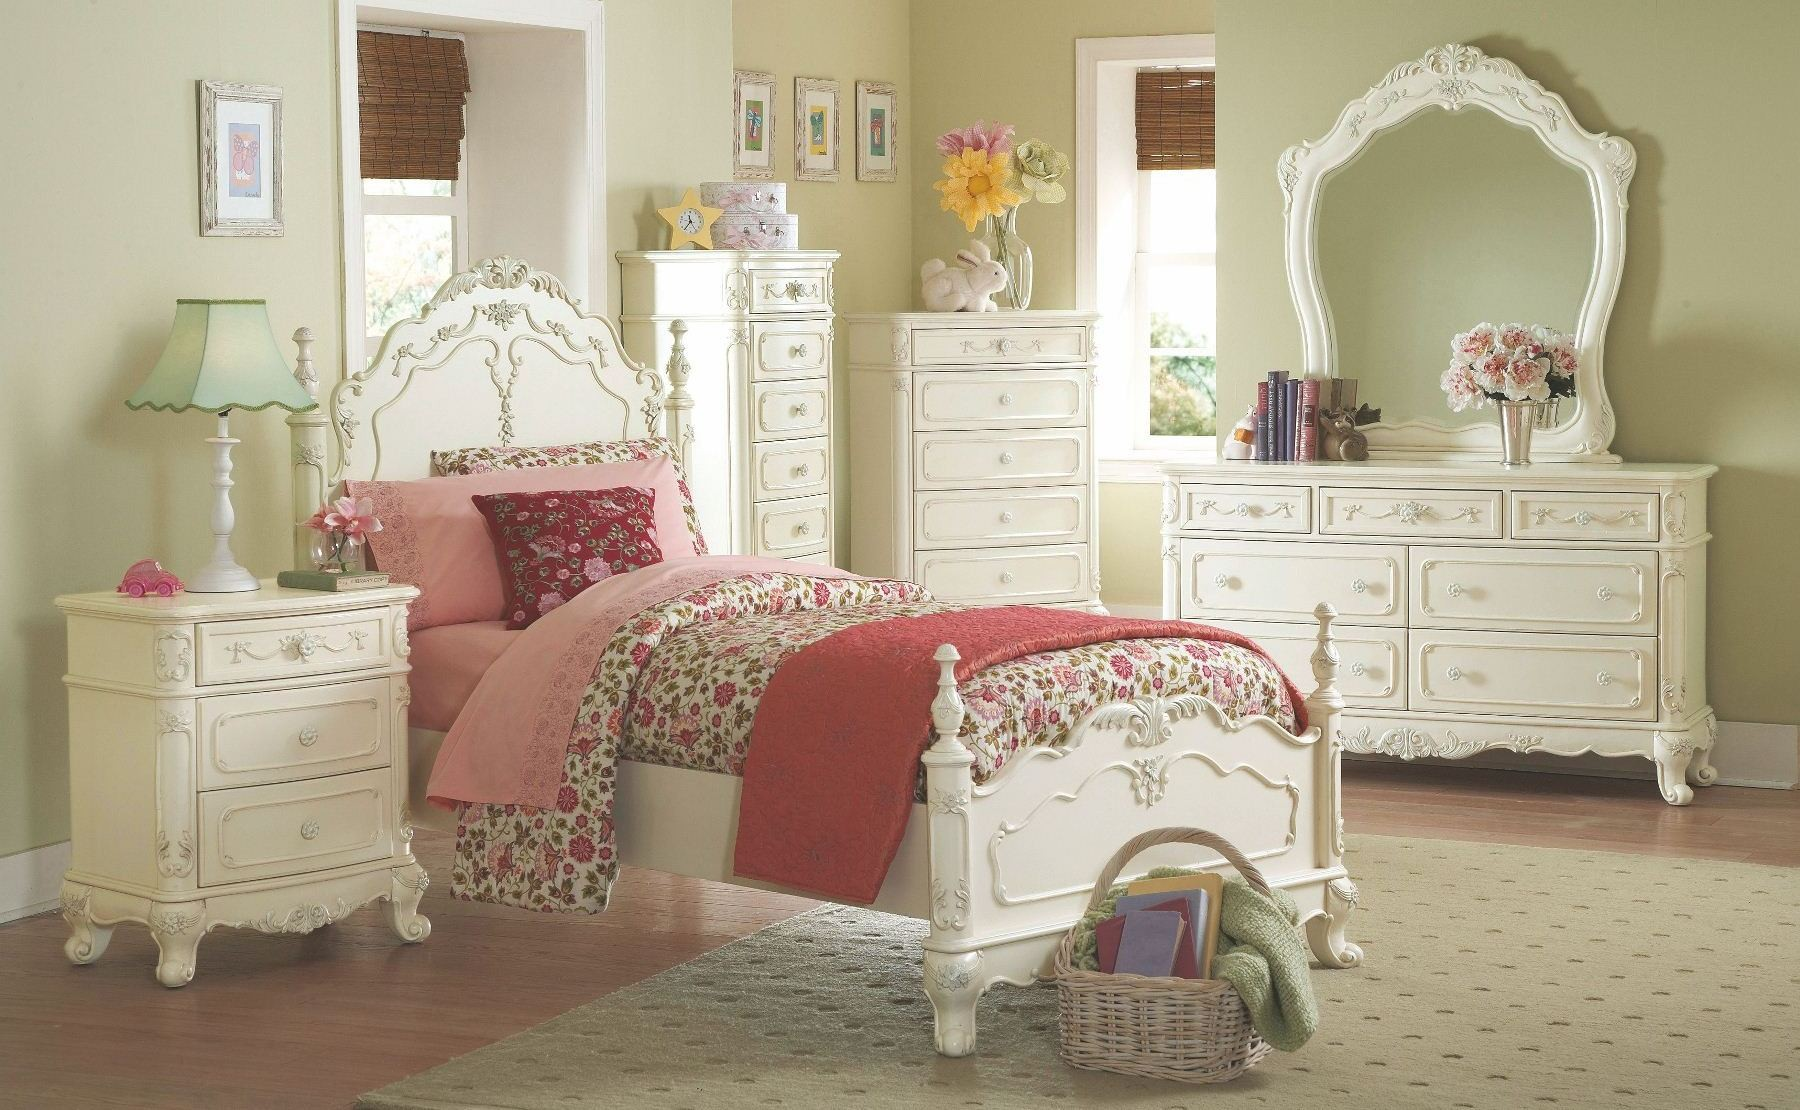 cinderella youth bedroom set from homelegance 1386 13894 | 1386t 1 6